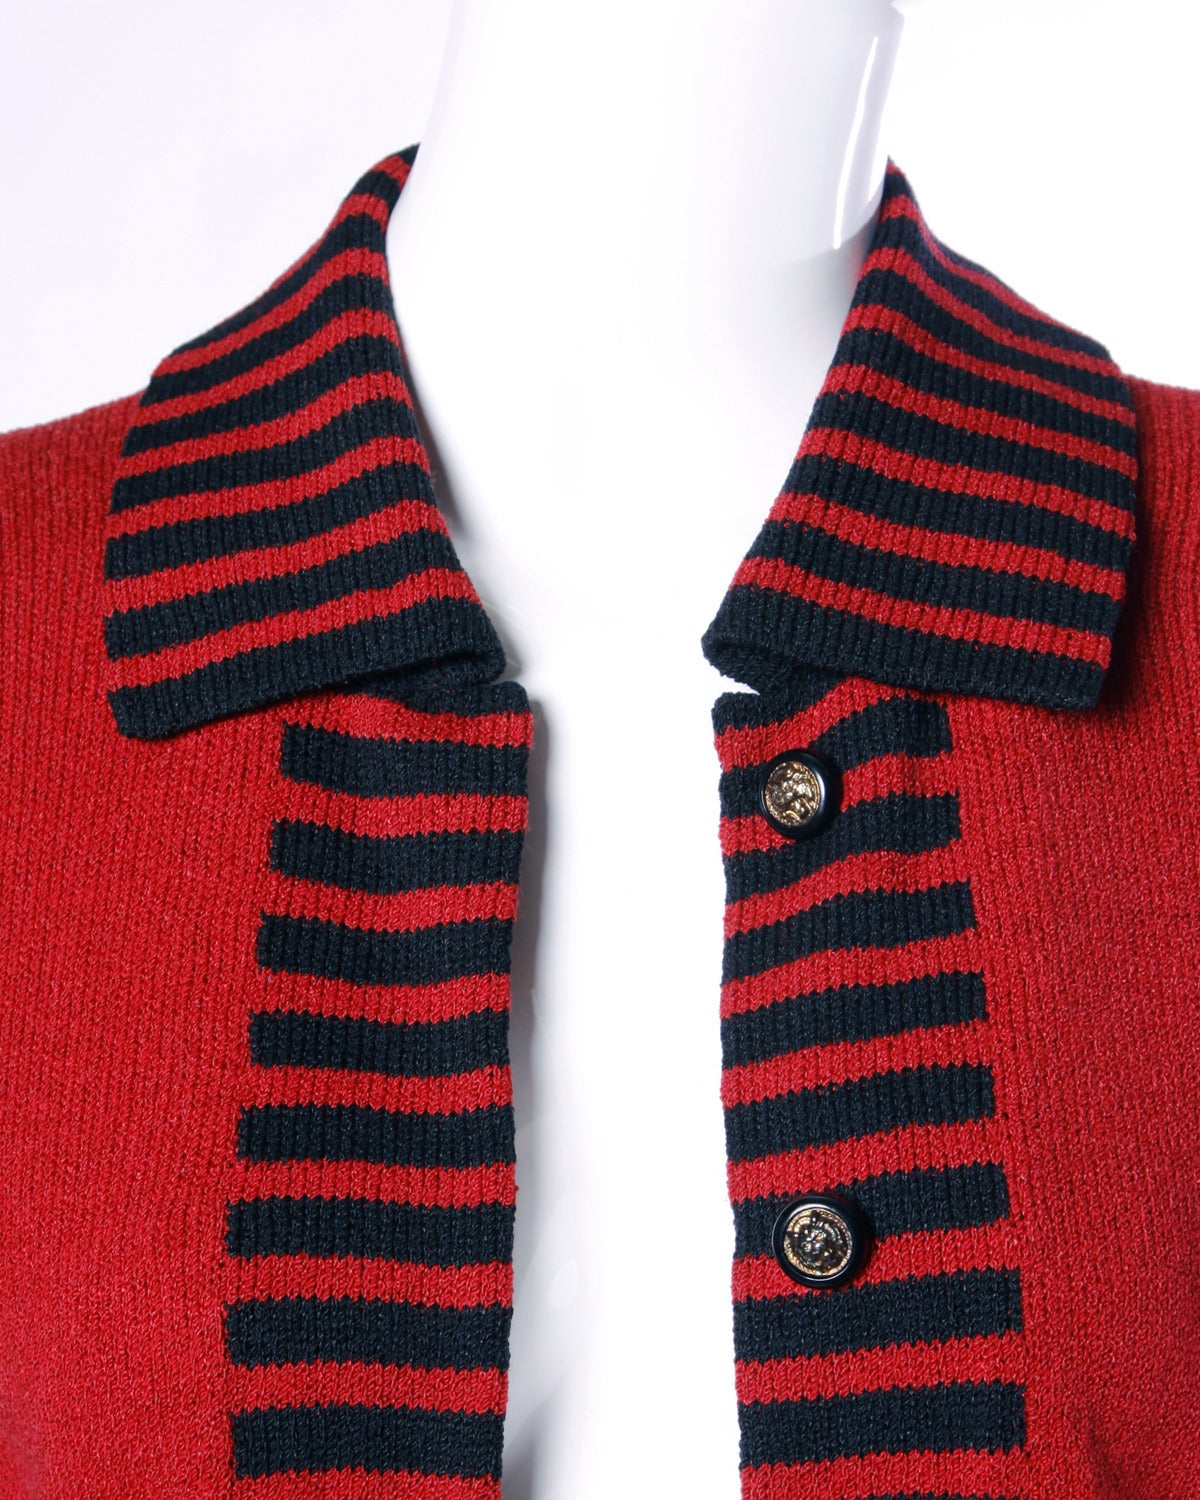 Adolfo Vintage Red & Black Striped Knit Cardigan Sweater or Suit Jacket 3